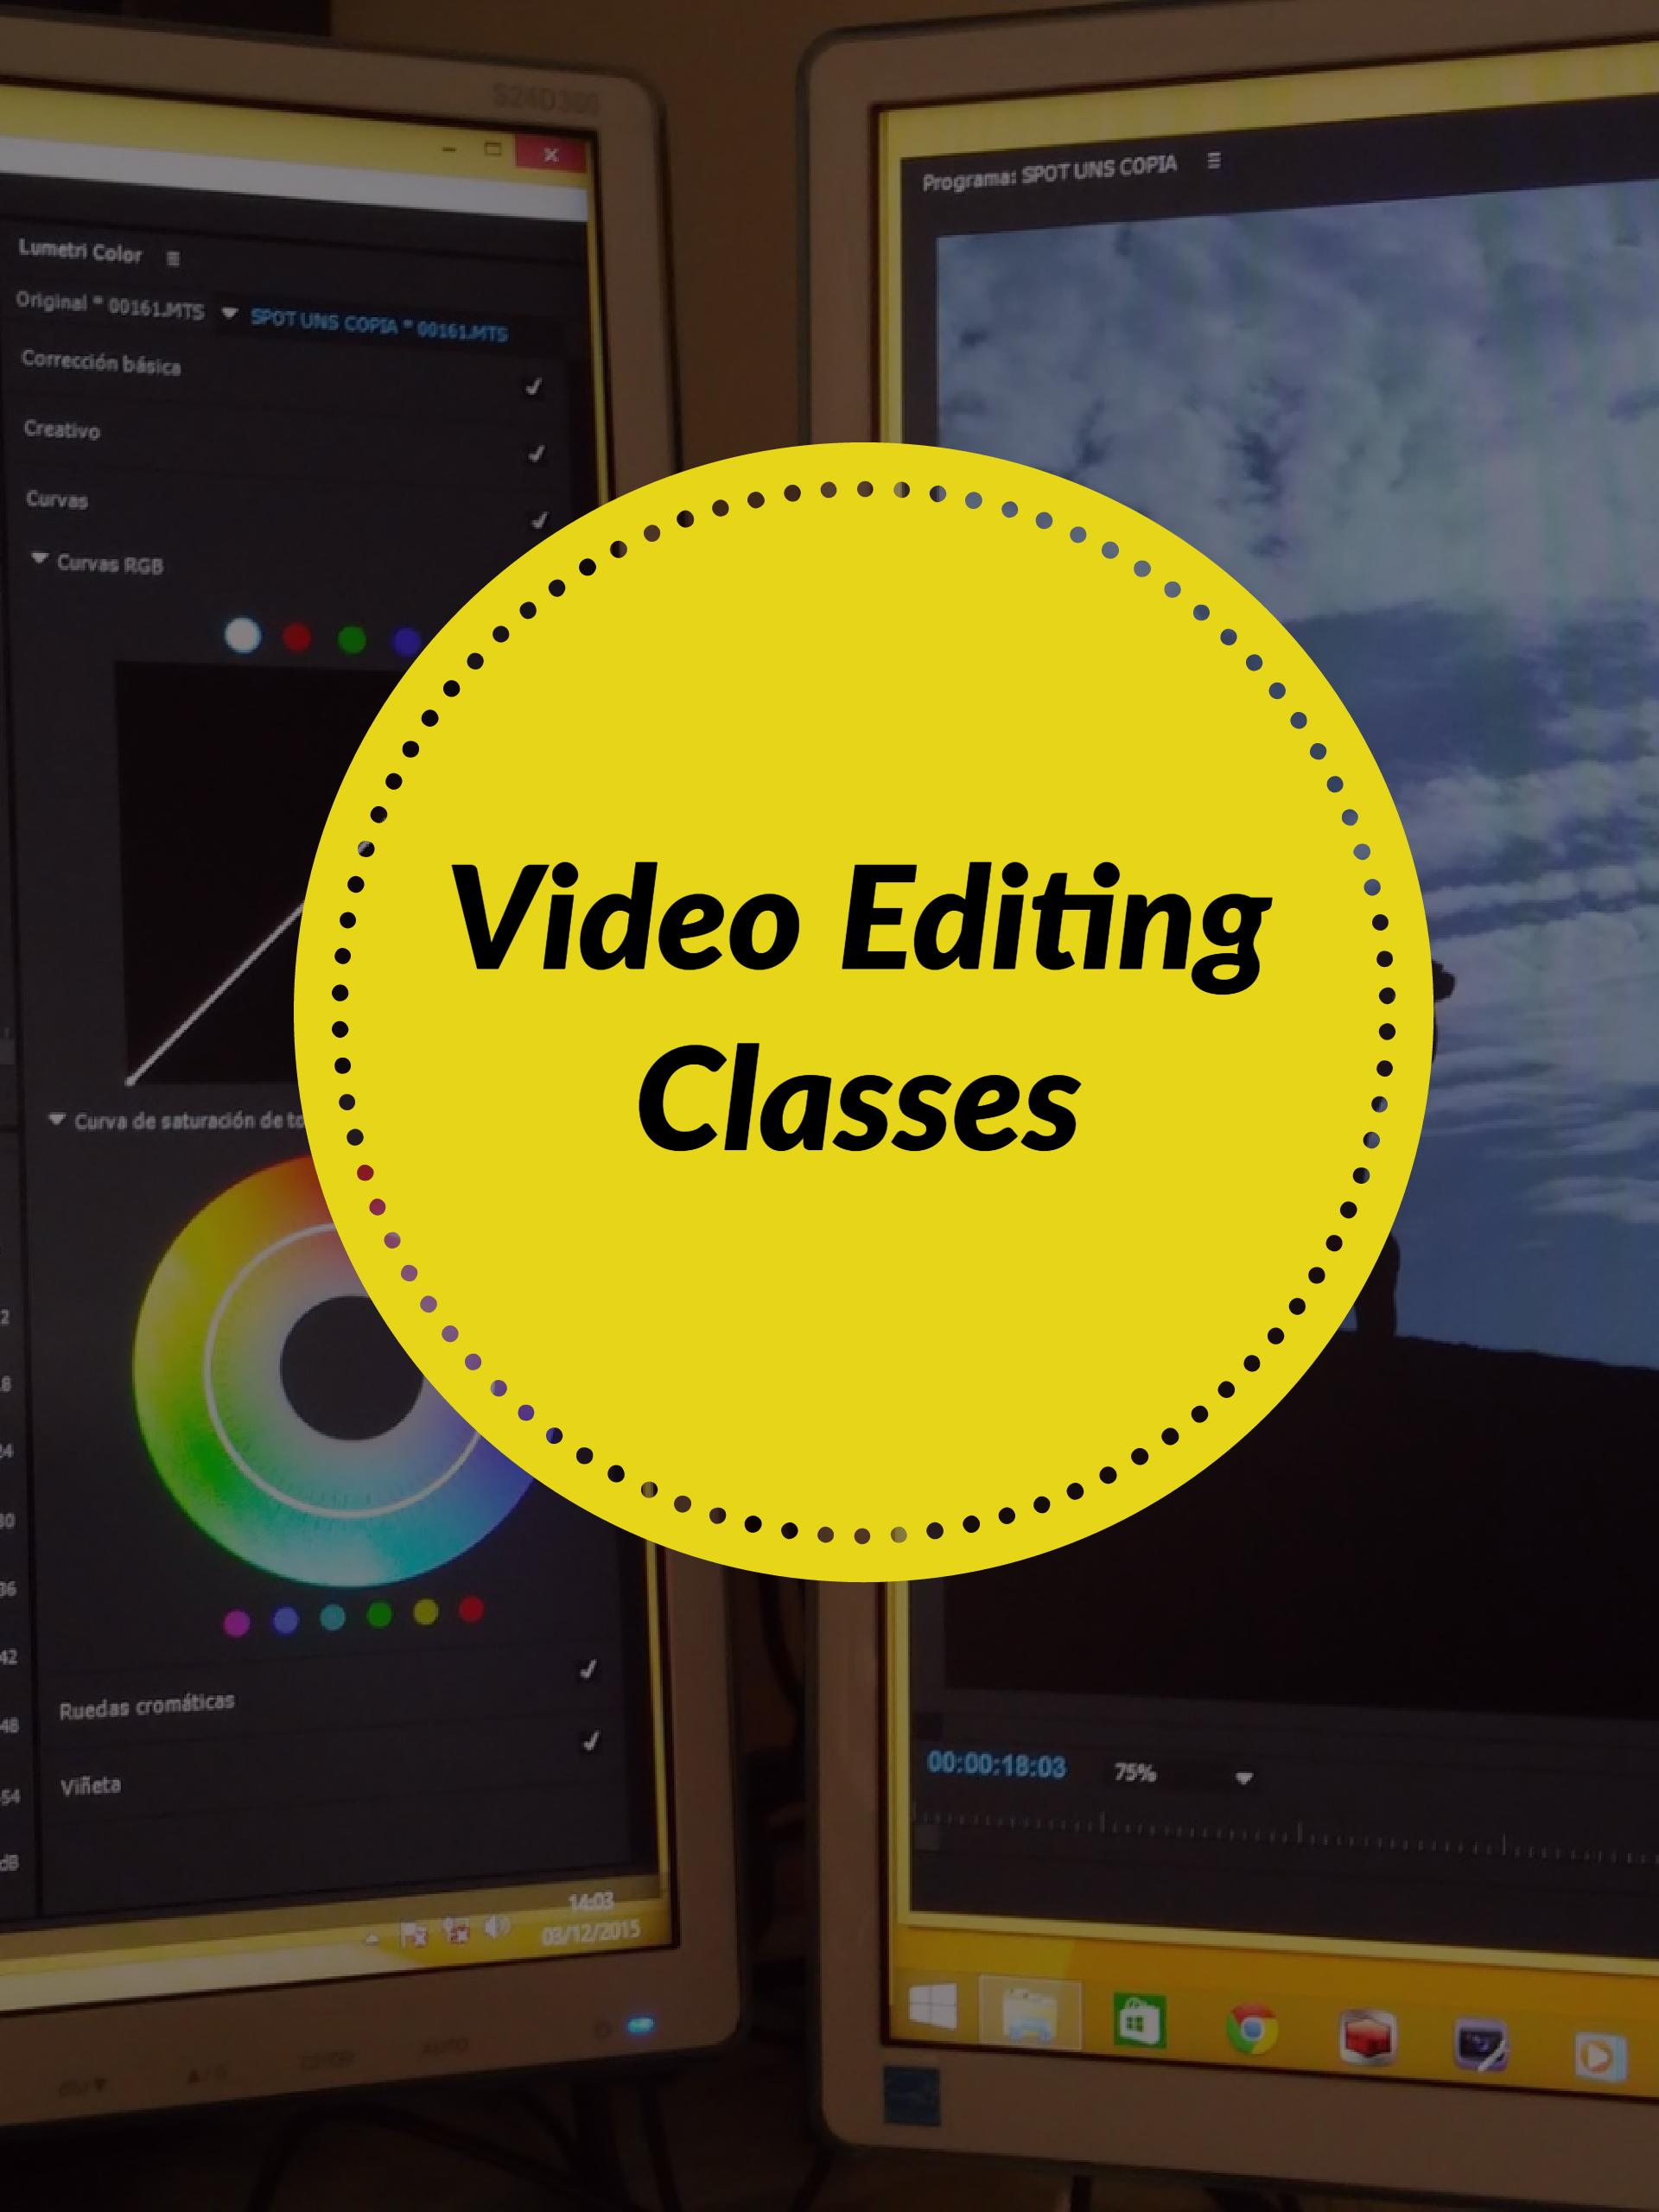 Video Editing Classes in Delhi